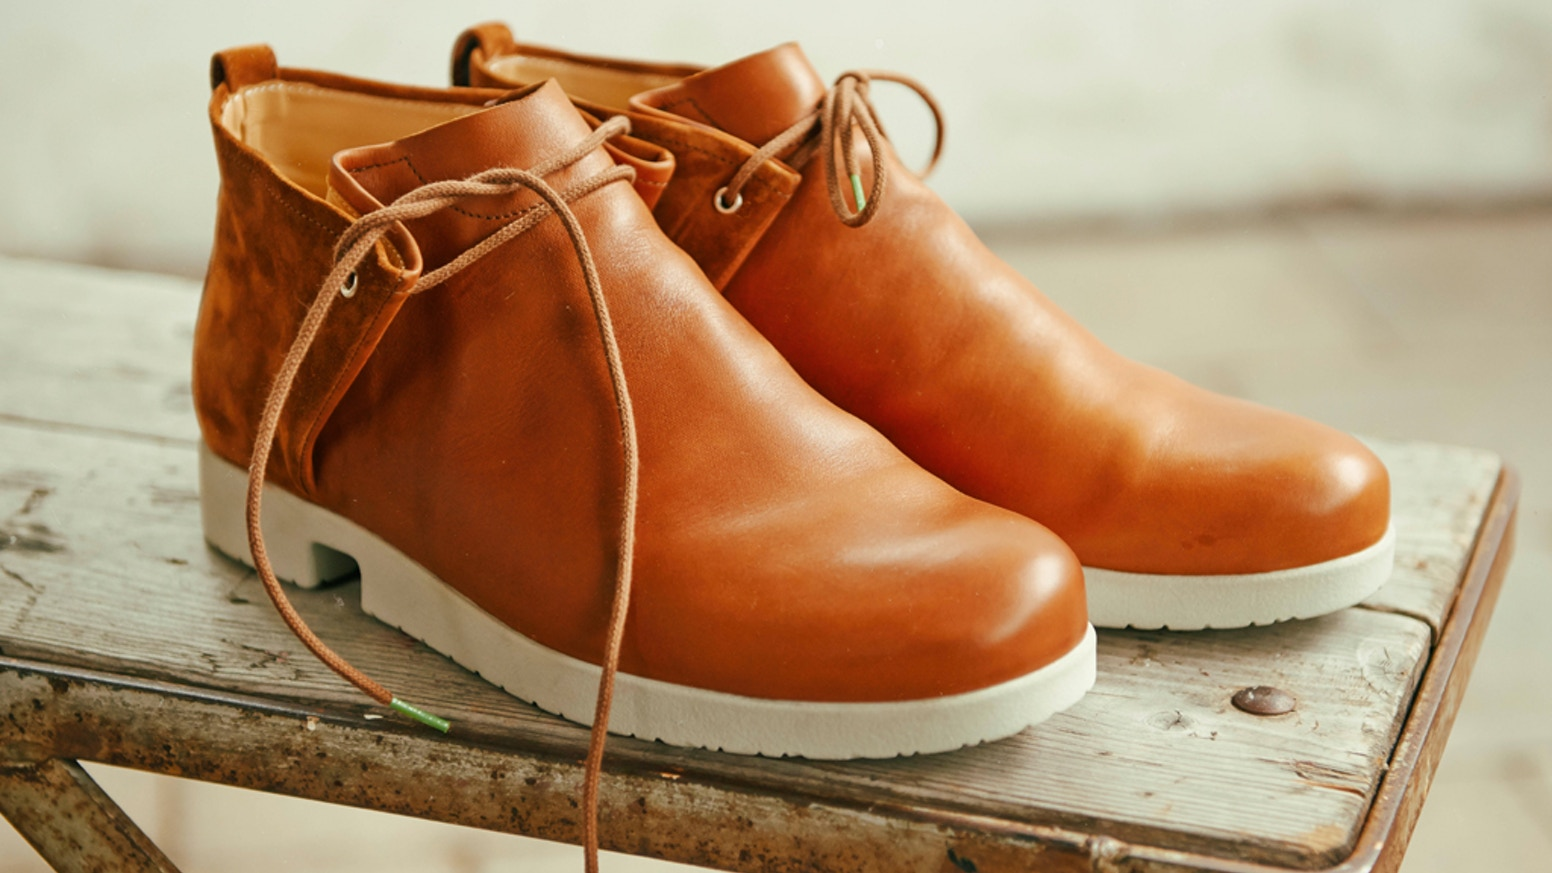 Shoes of true quality created with amazing materials, fair labor and outstanding design. Dare to walk your dreams with Bend-it! Missed the project? Go check our website to order!Or follow us on Facebook and twitter.